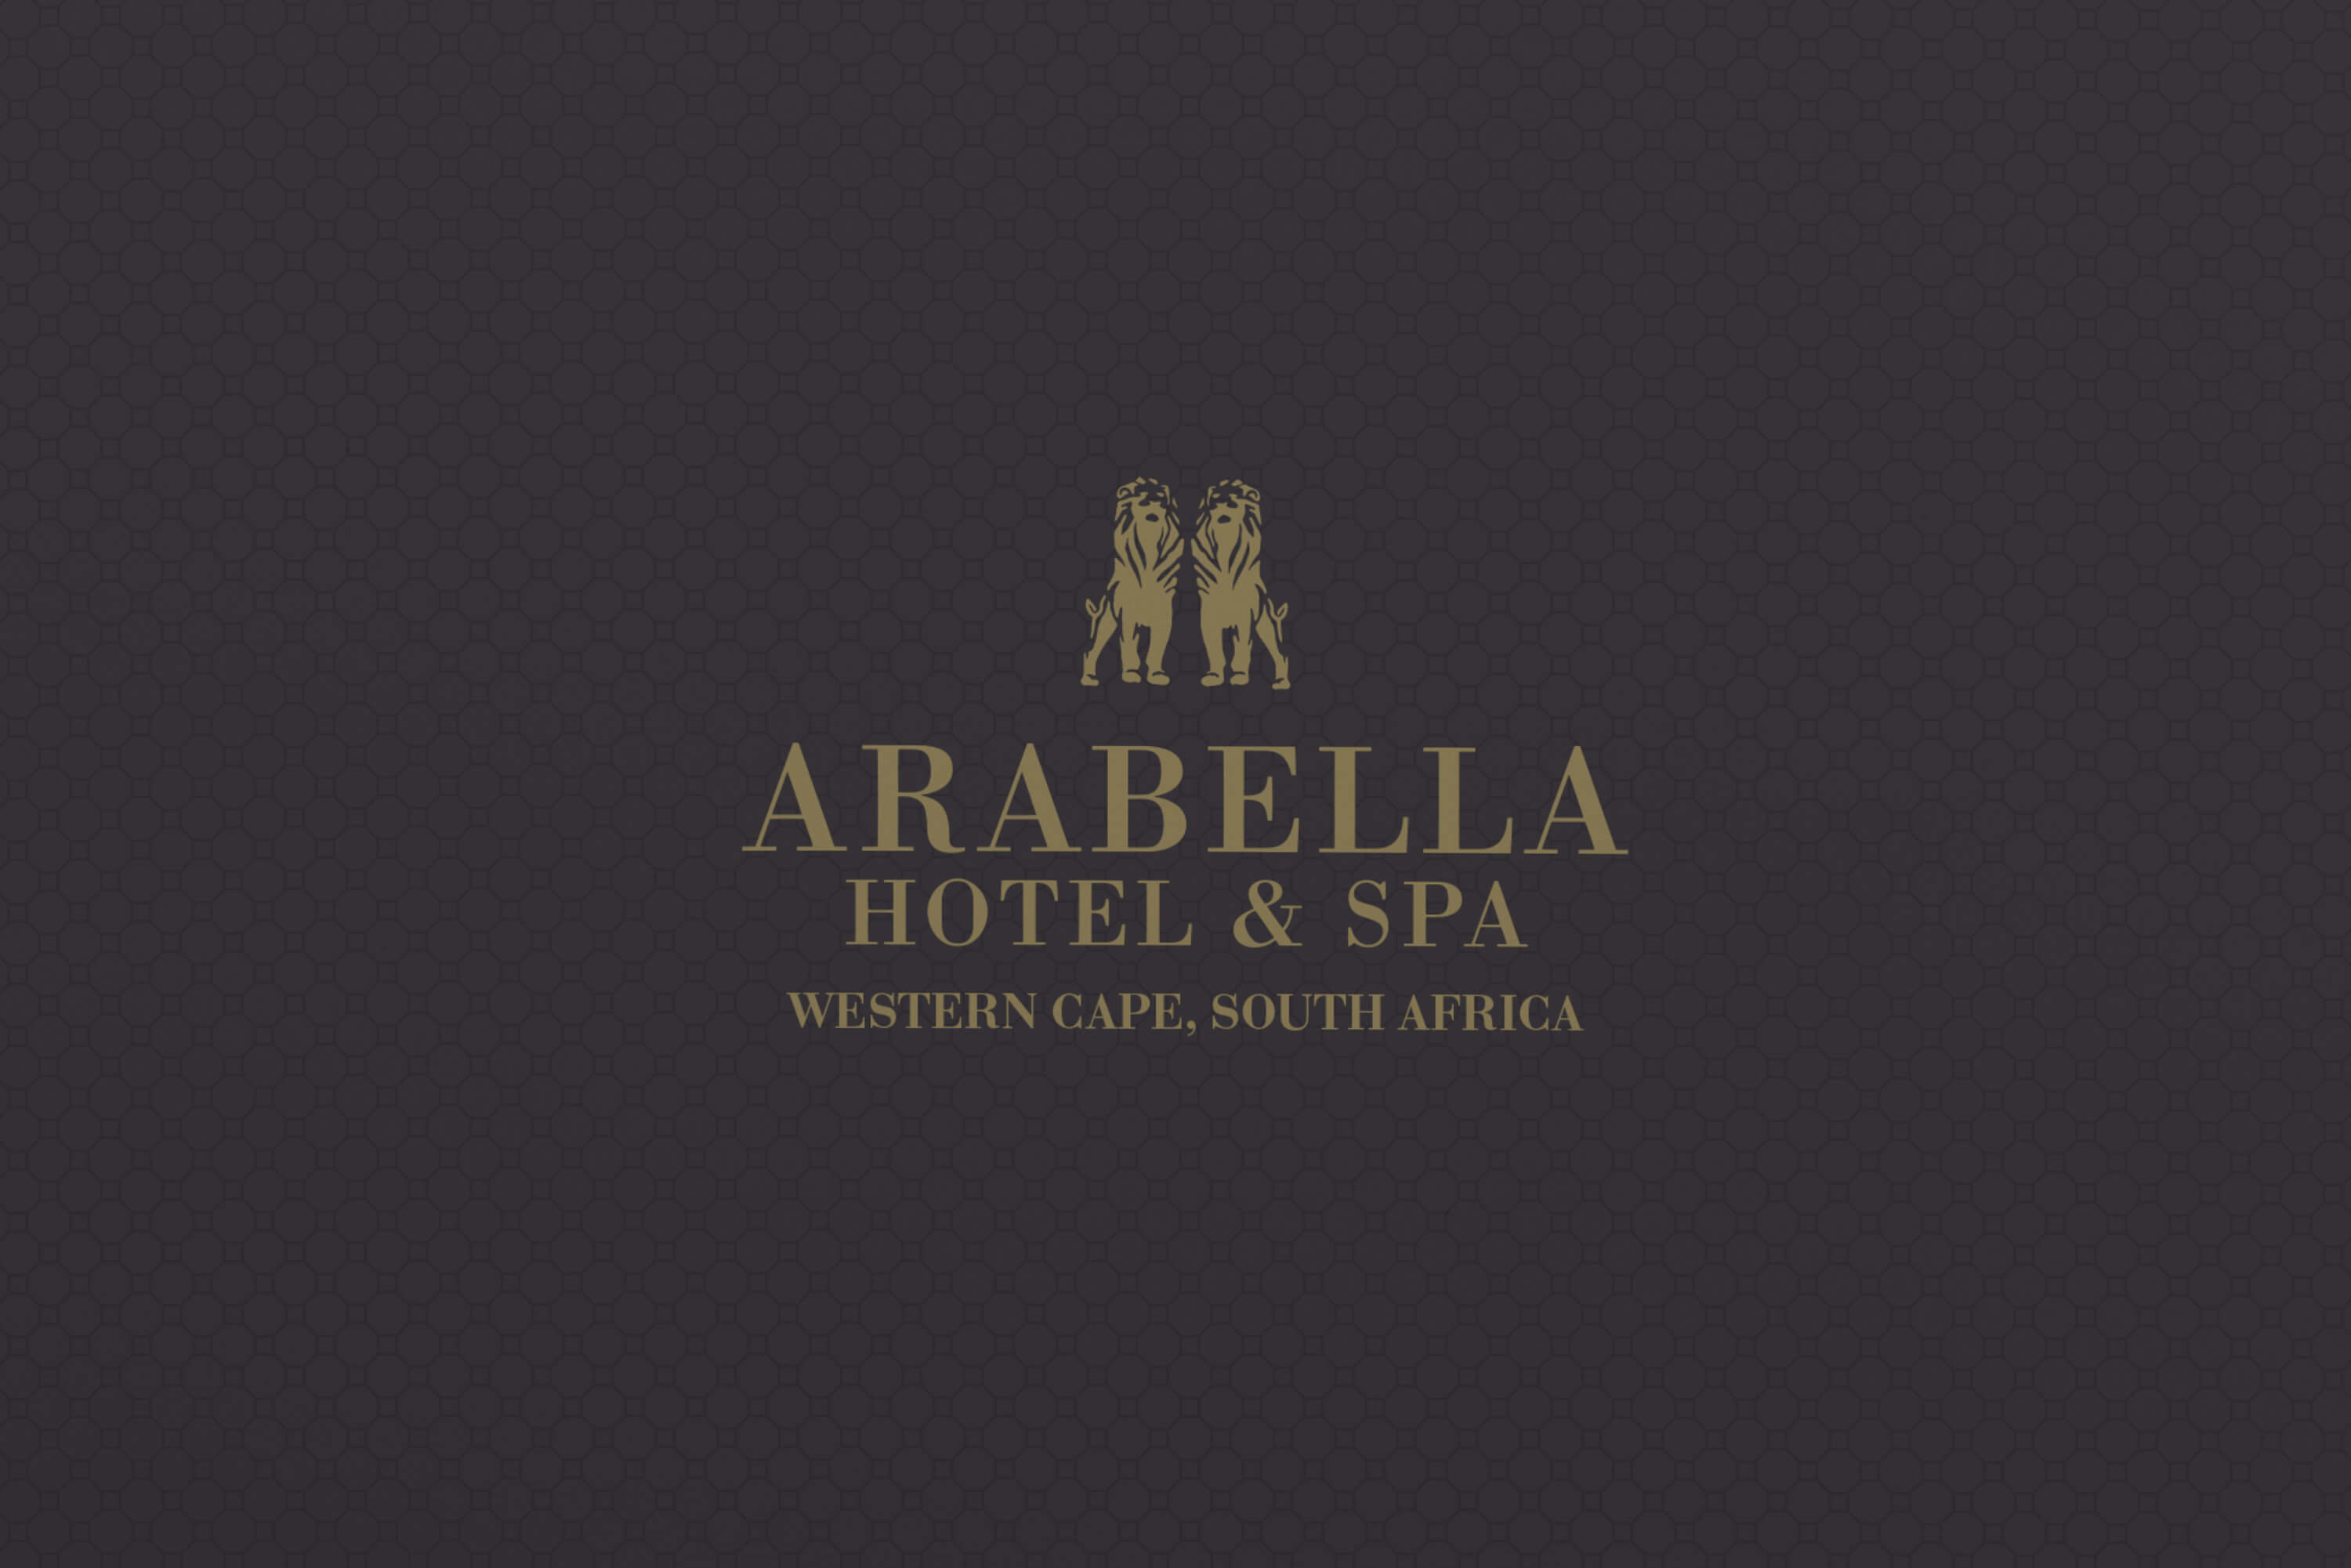 Logo design for the JLL Arabella investment memorandum design